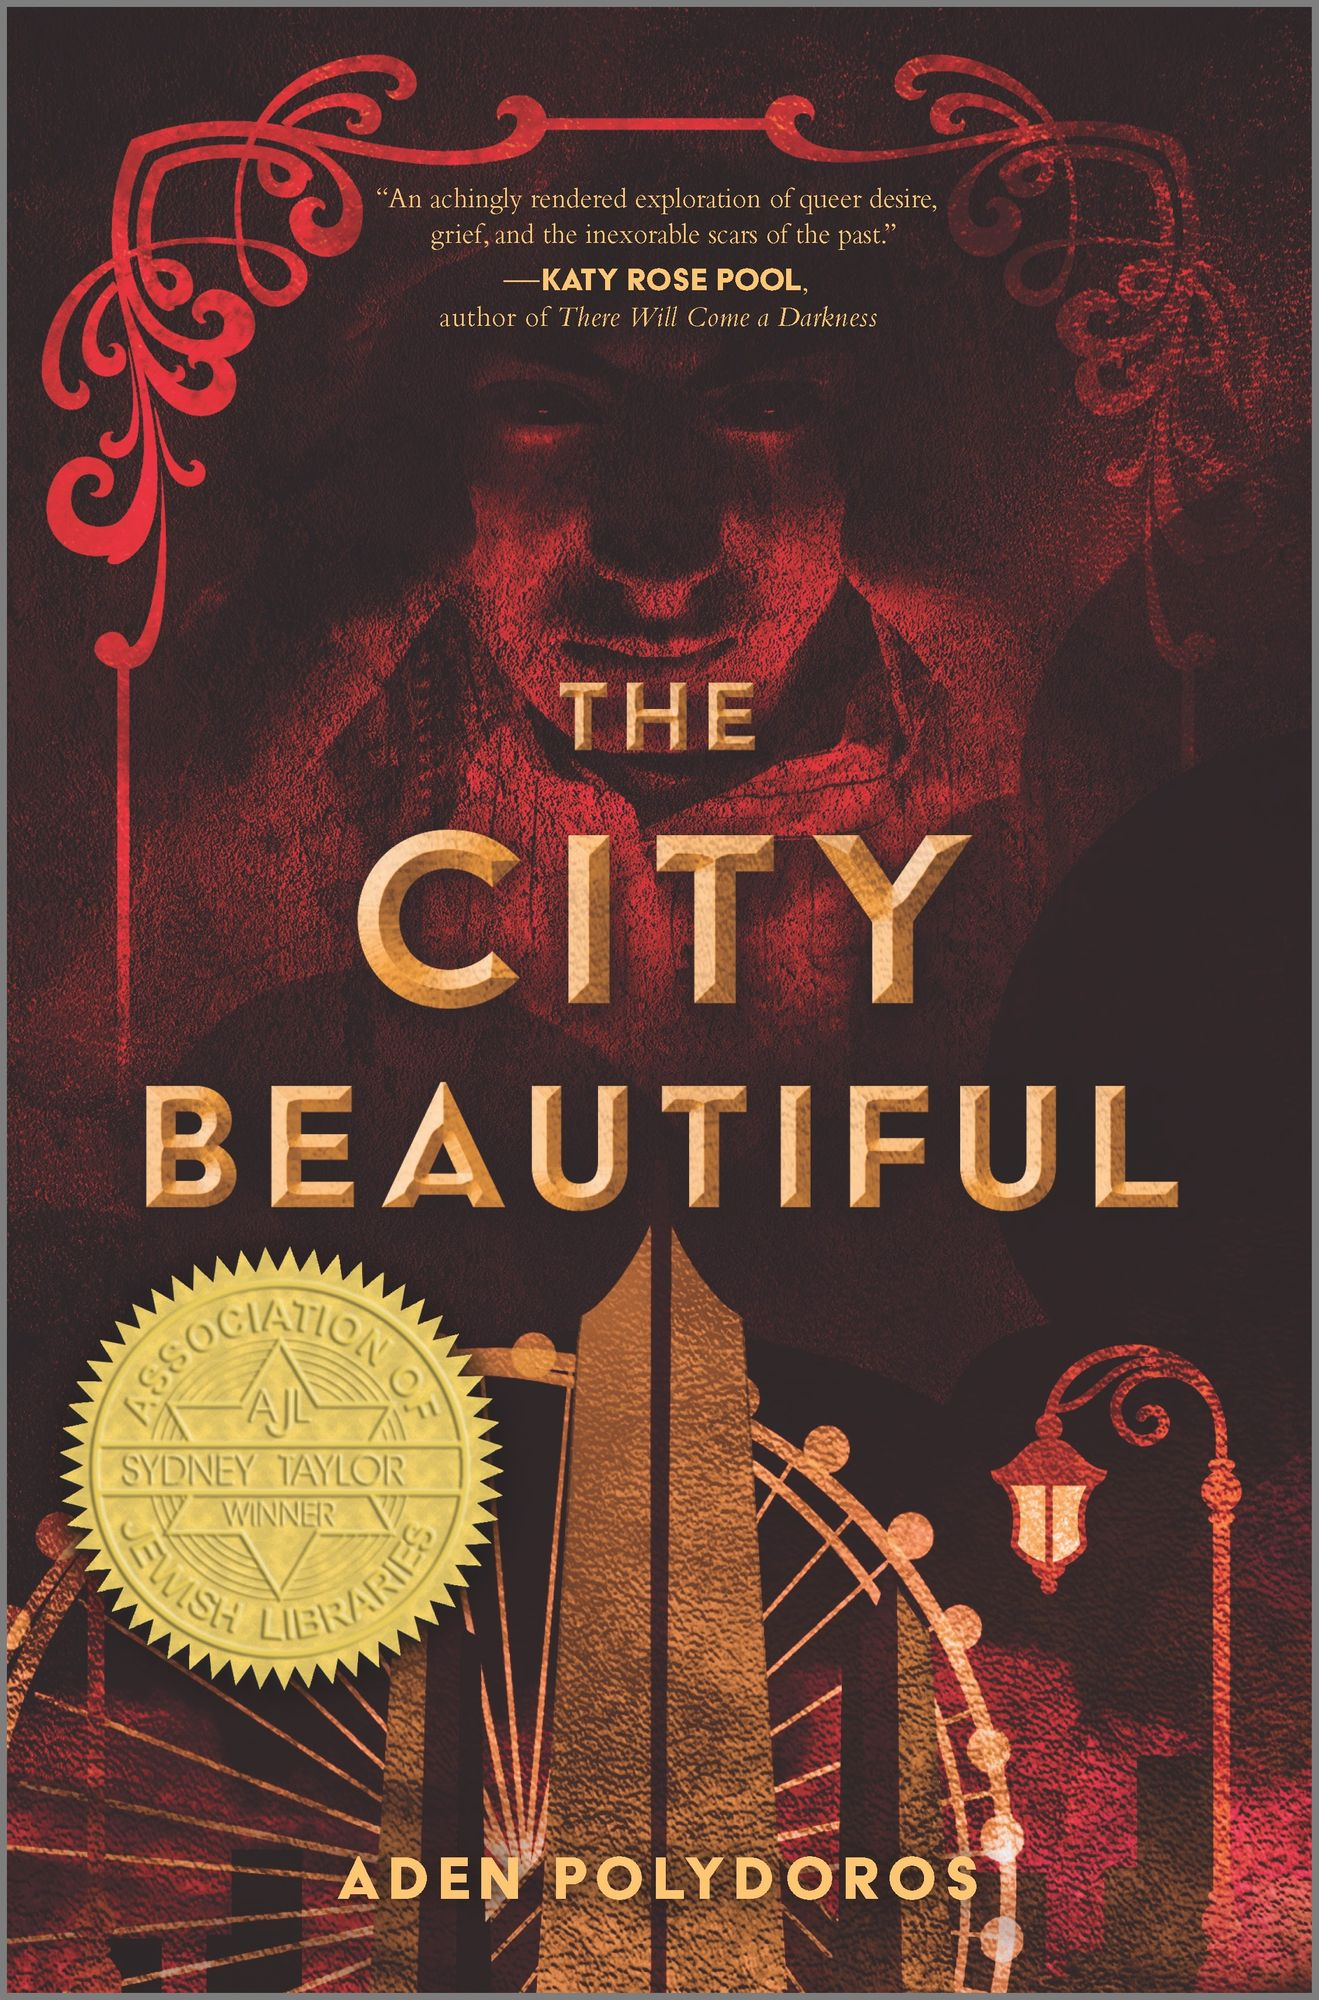 The City Beautiful by Aden Polydoros